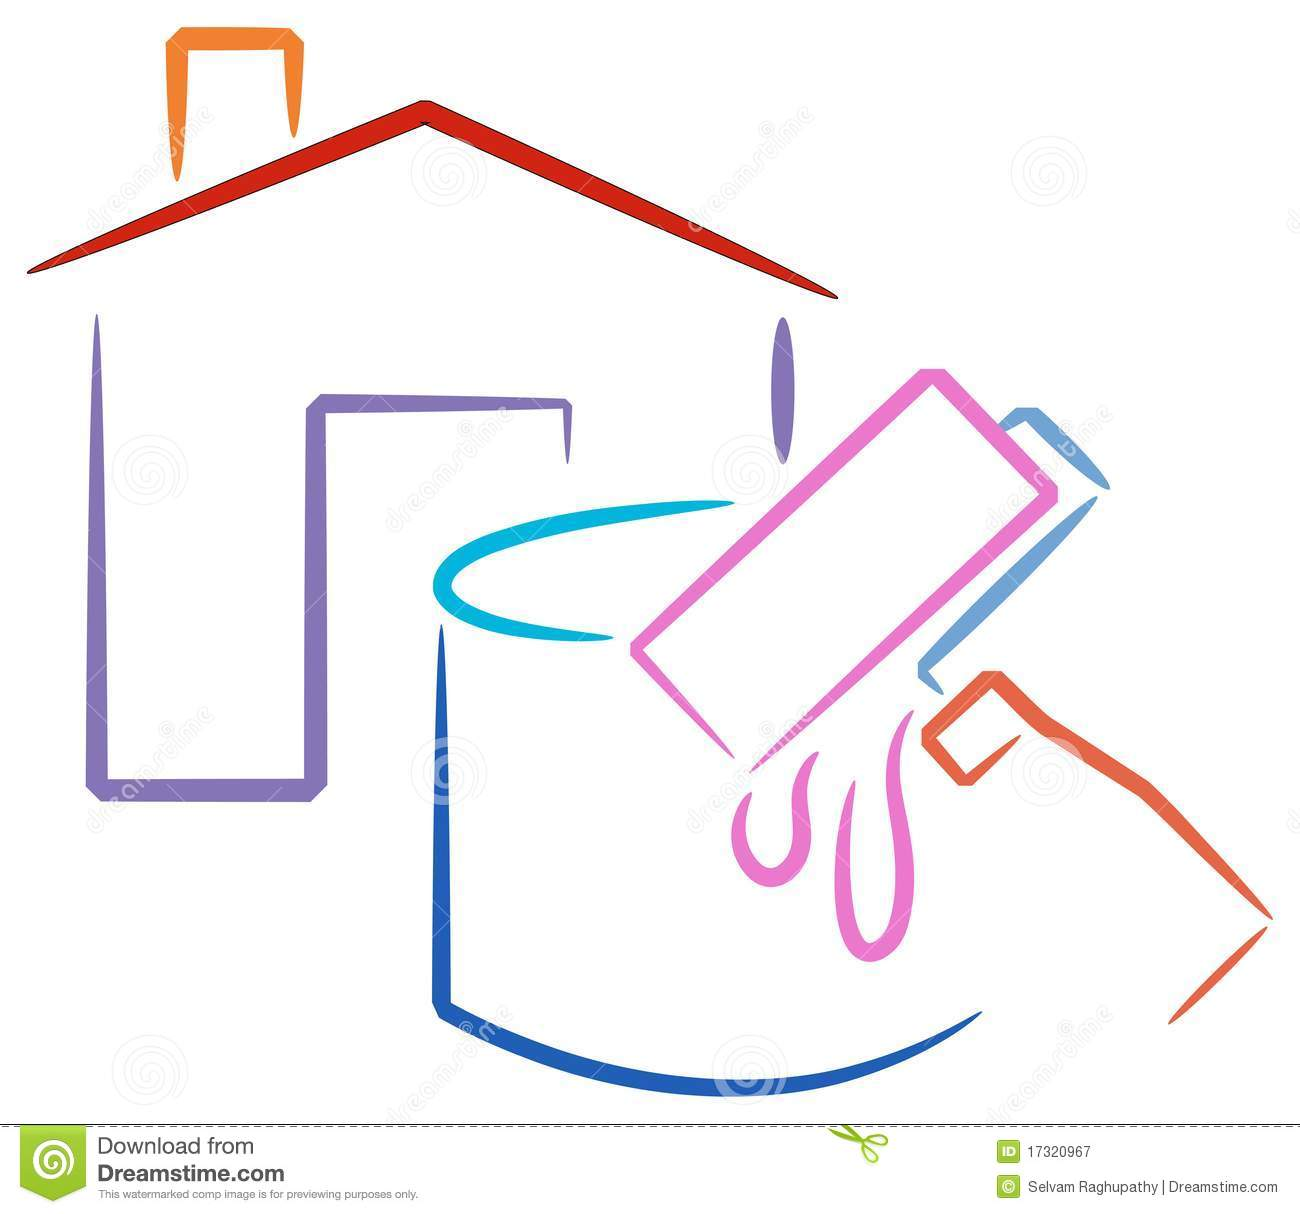 House painting logo stock vector. Illustration of decorating.